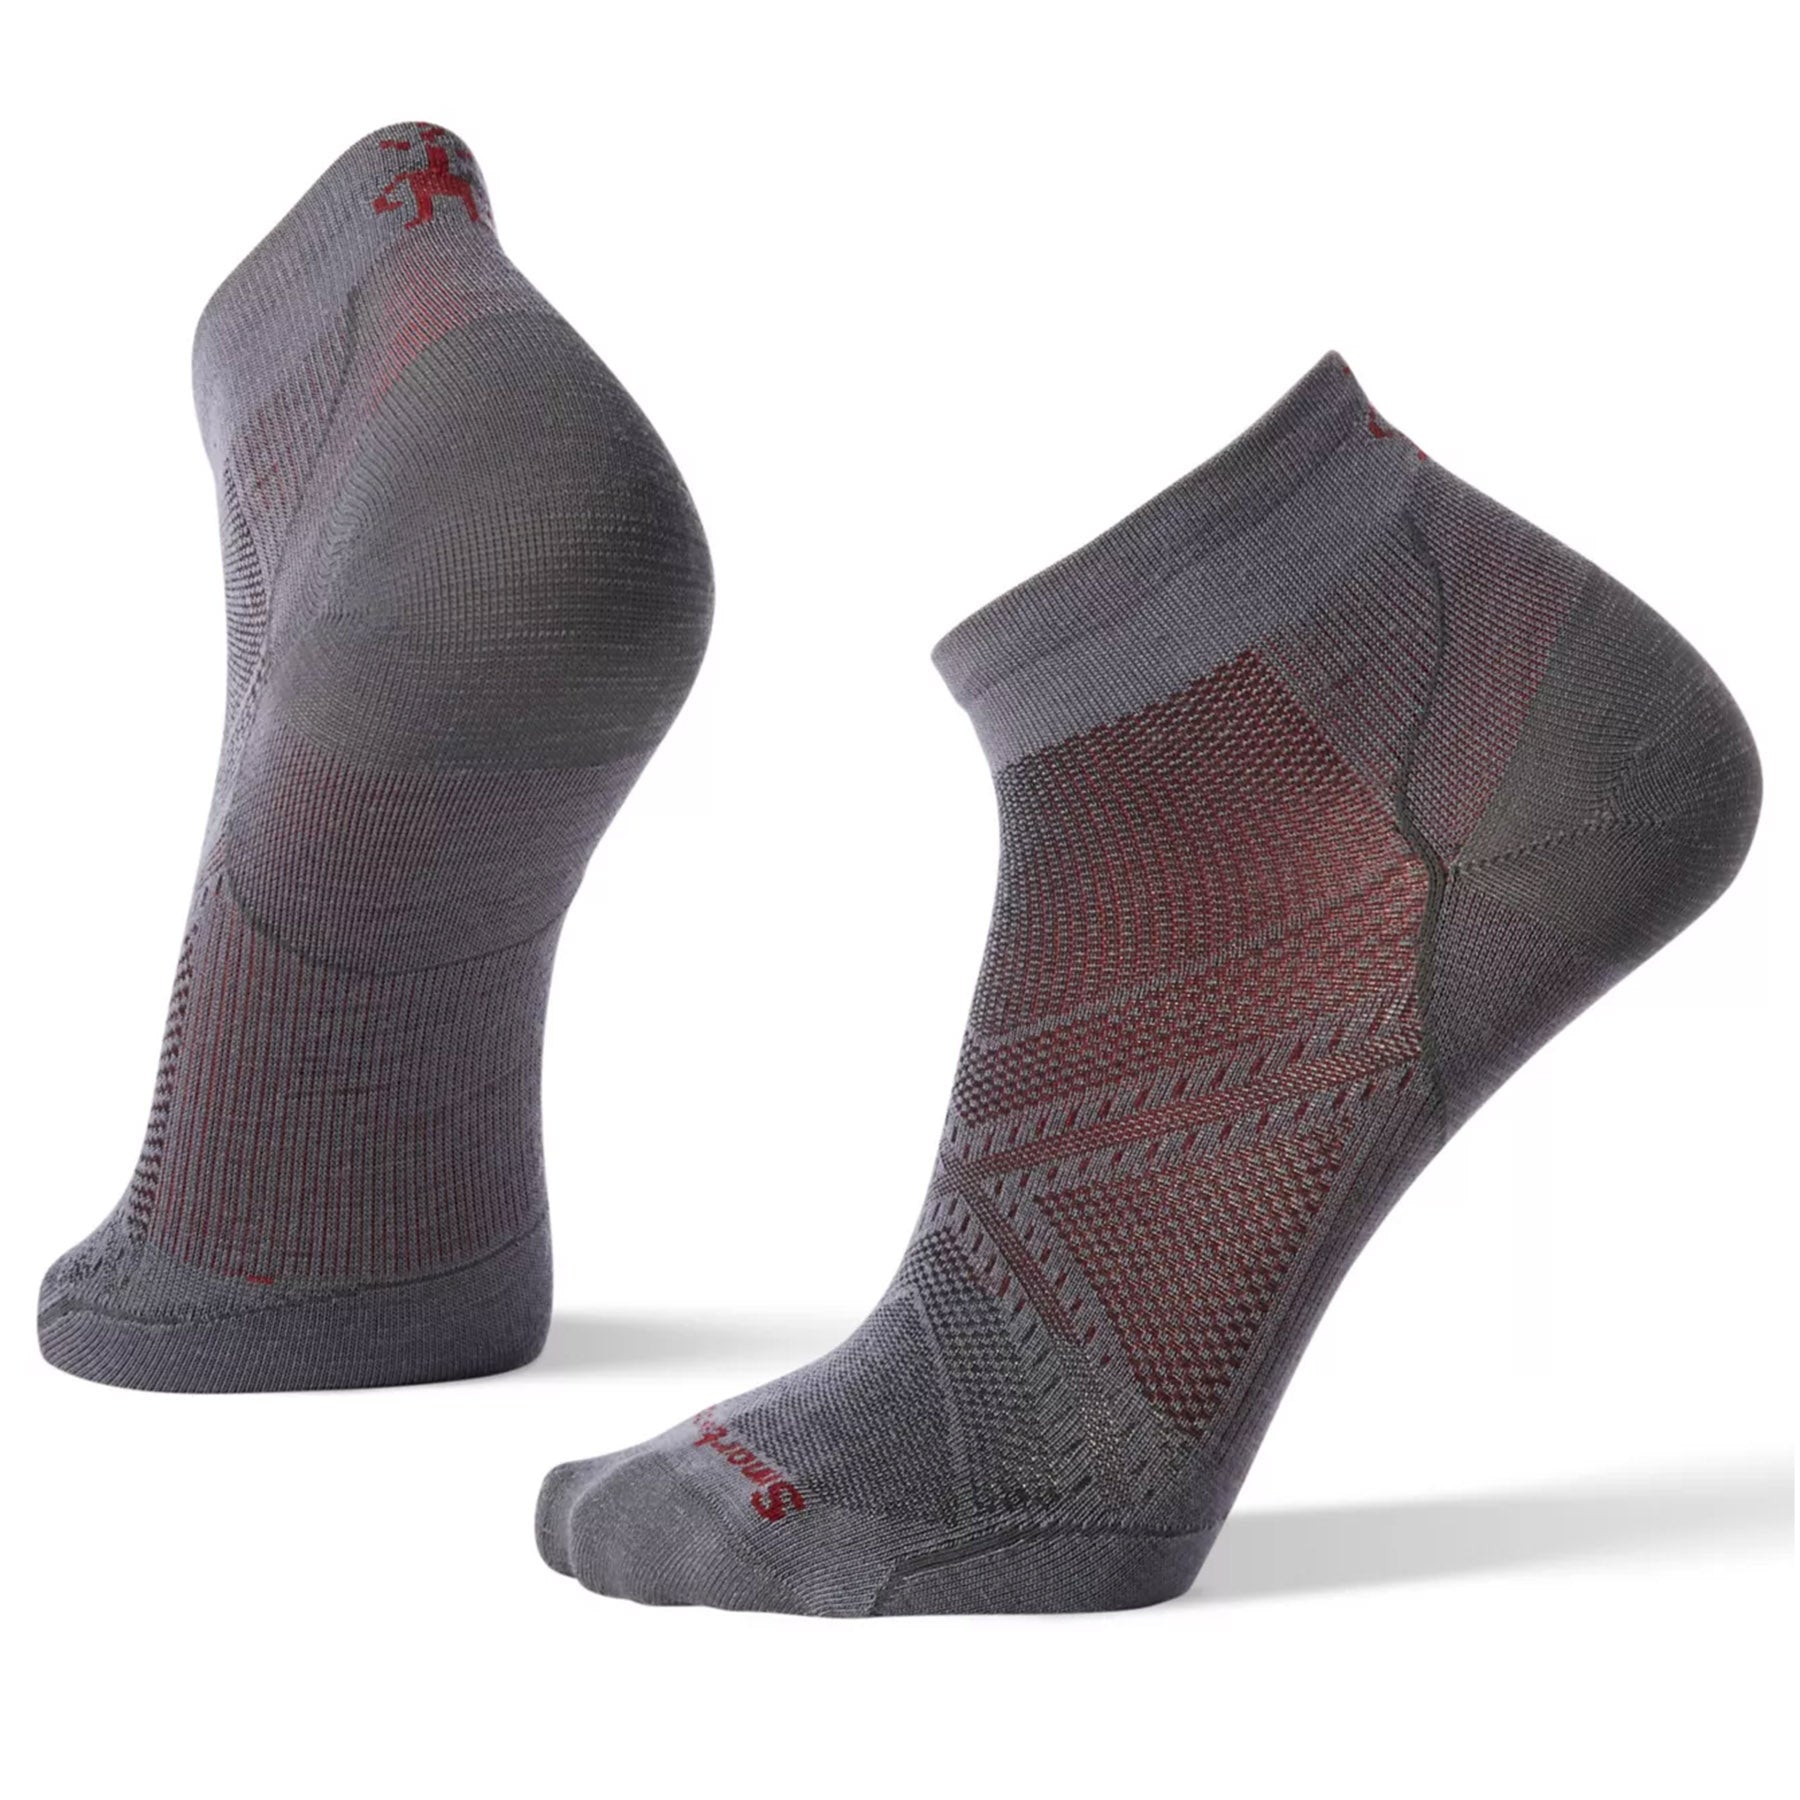 Men's PhD® Run Ultra Light Low Cut Socks in graphite